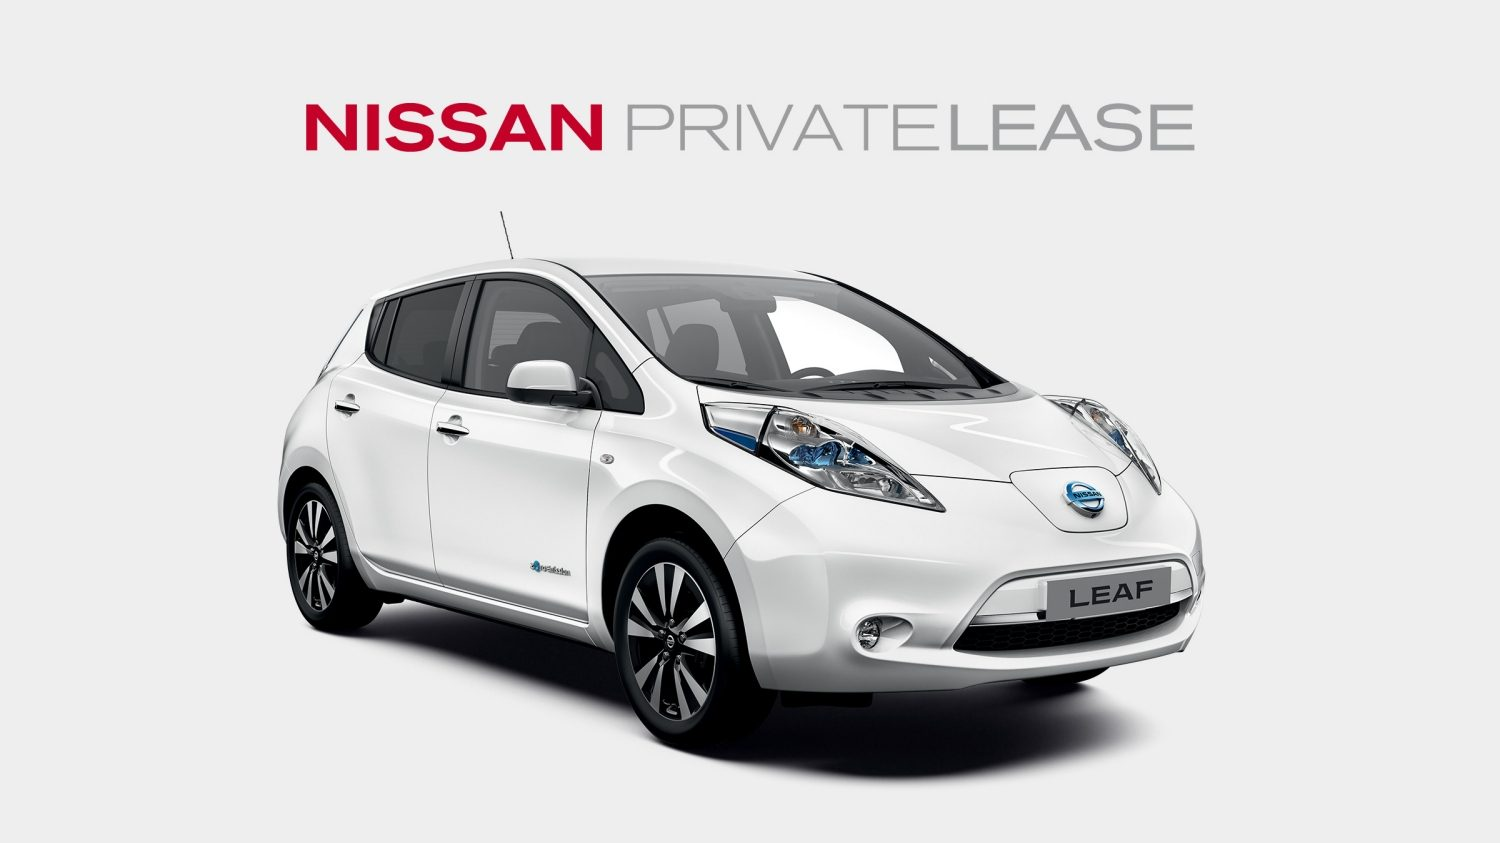 Nissan Private Lease Deal - LEAF